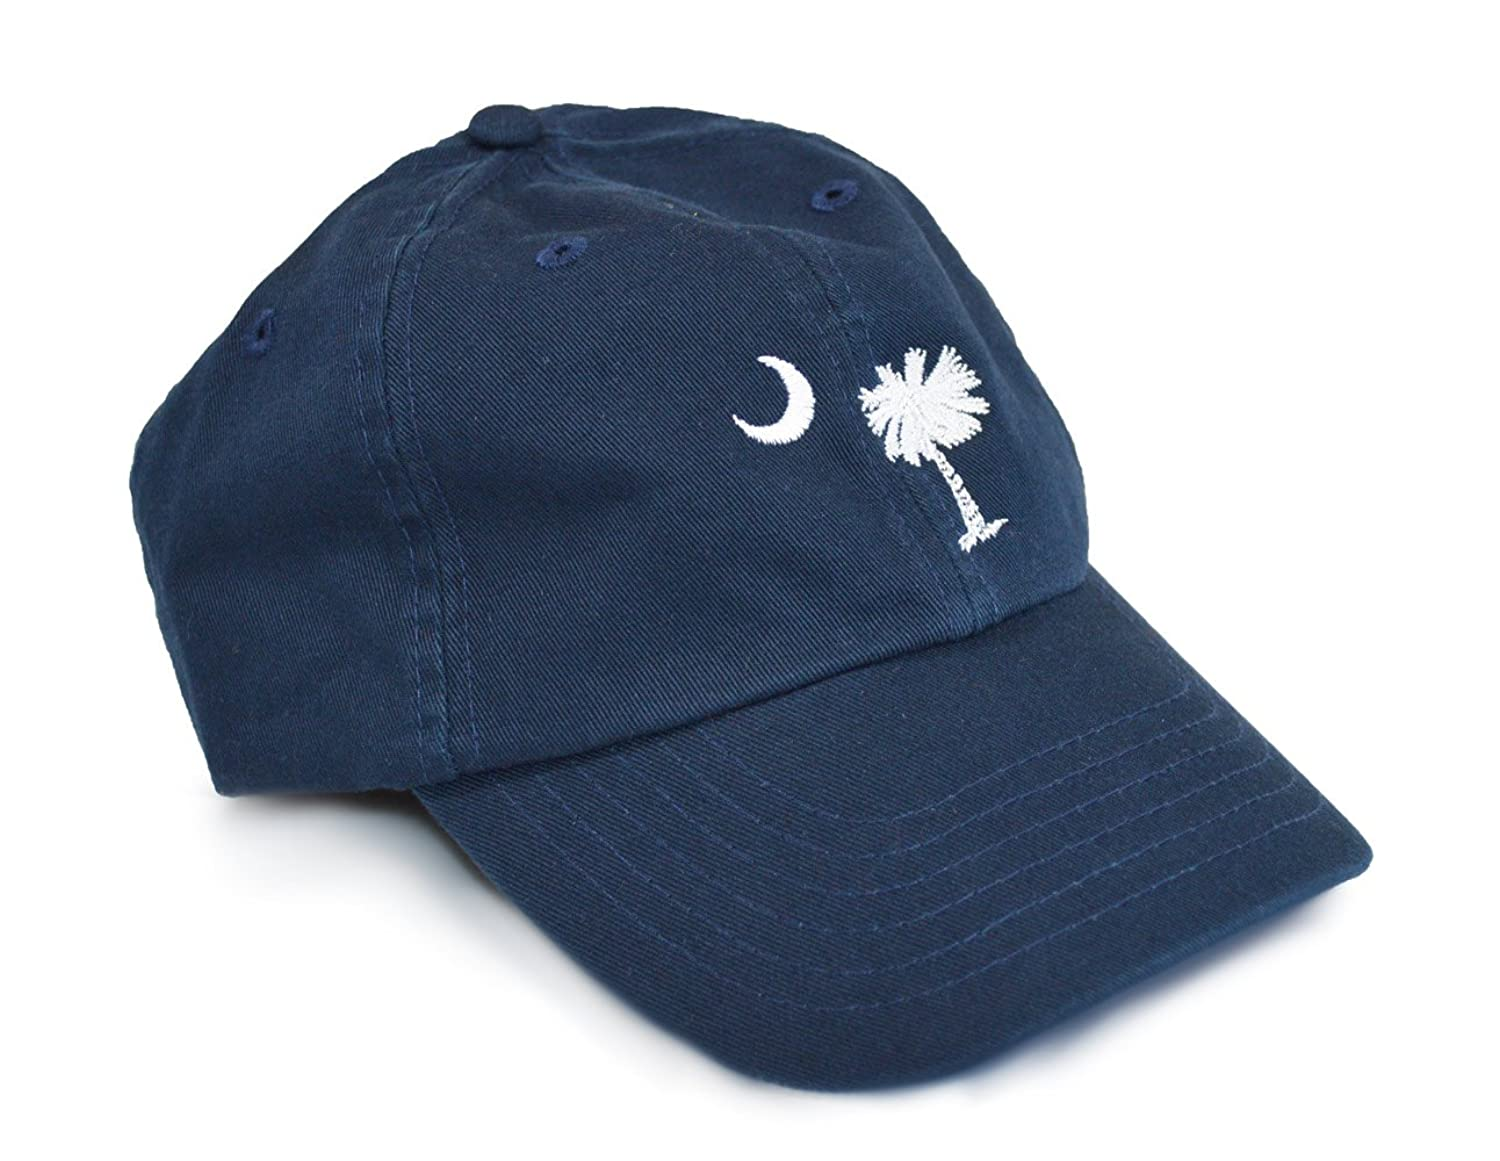 South Carolina State Flag Low Profile Baseball Hat | South Carolinian Golf Cap by Ann+Arbor+T Shirt+Co.